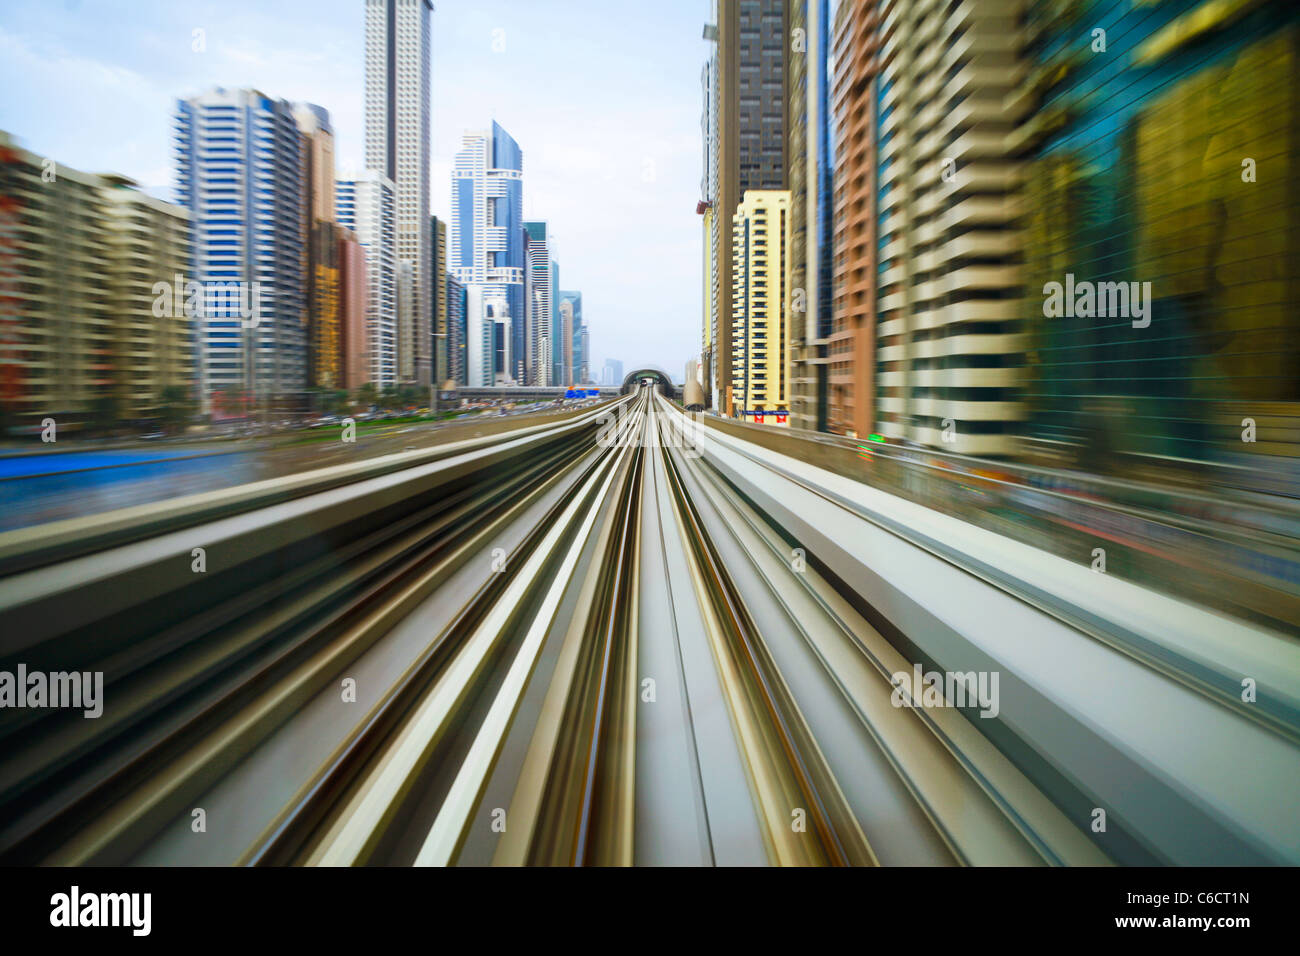 Opened in 2010, the Dubai Metro, MRT, in motion along Sheikh Zayed Road at dusk, Dubai, United Arab Emirates - Stock Image